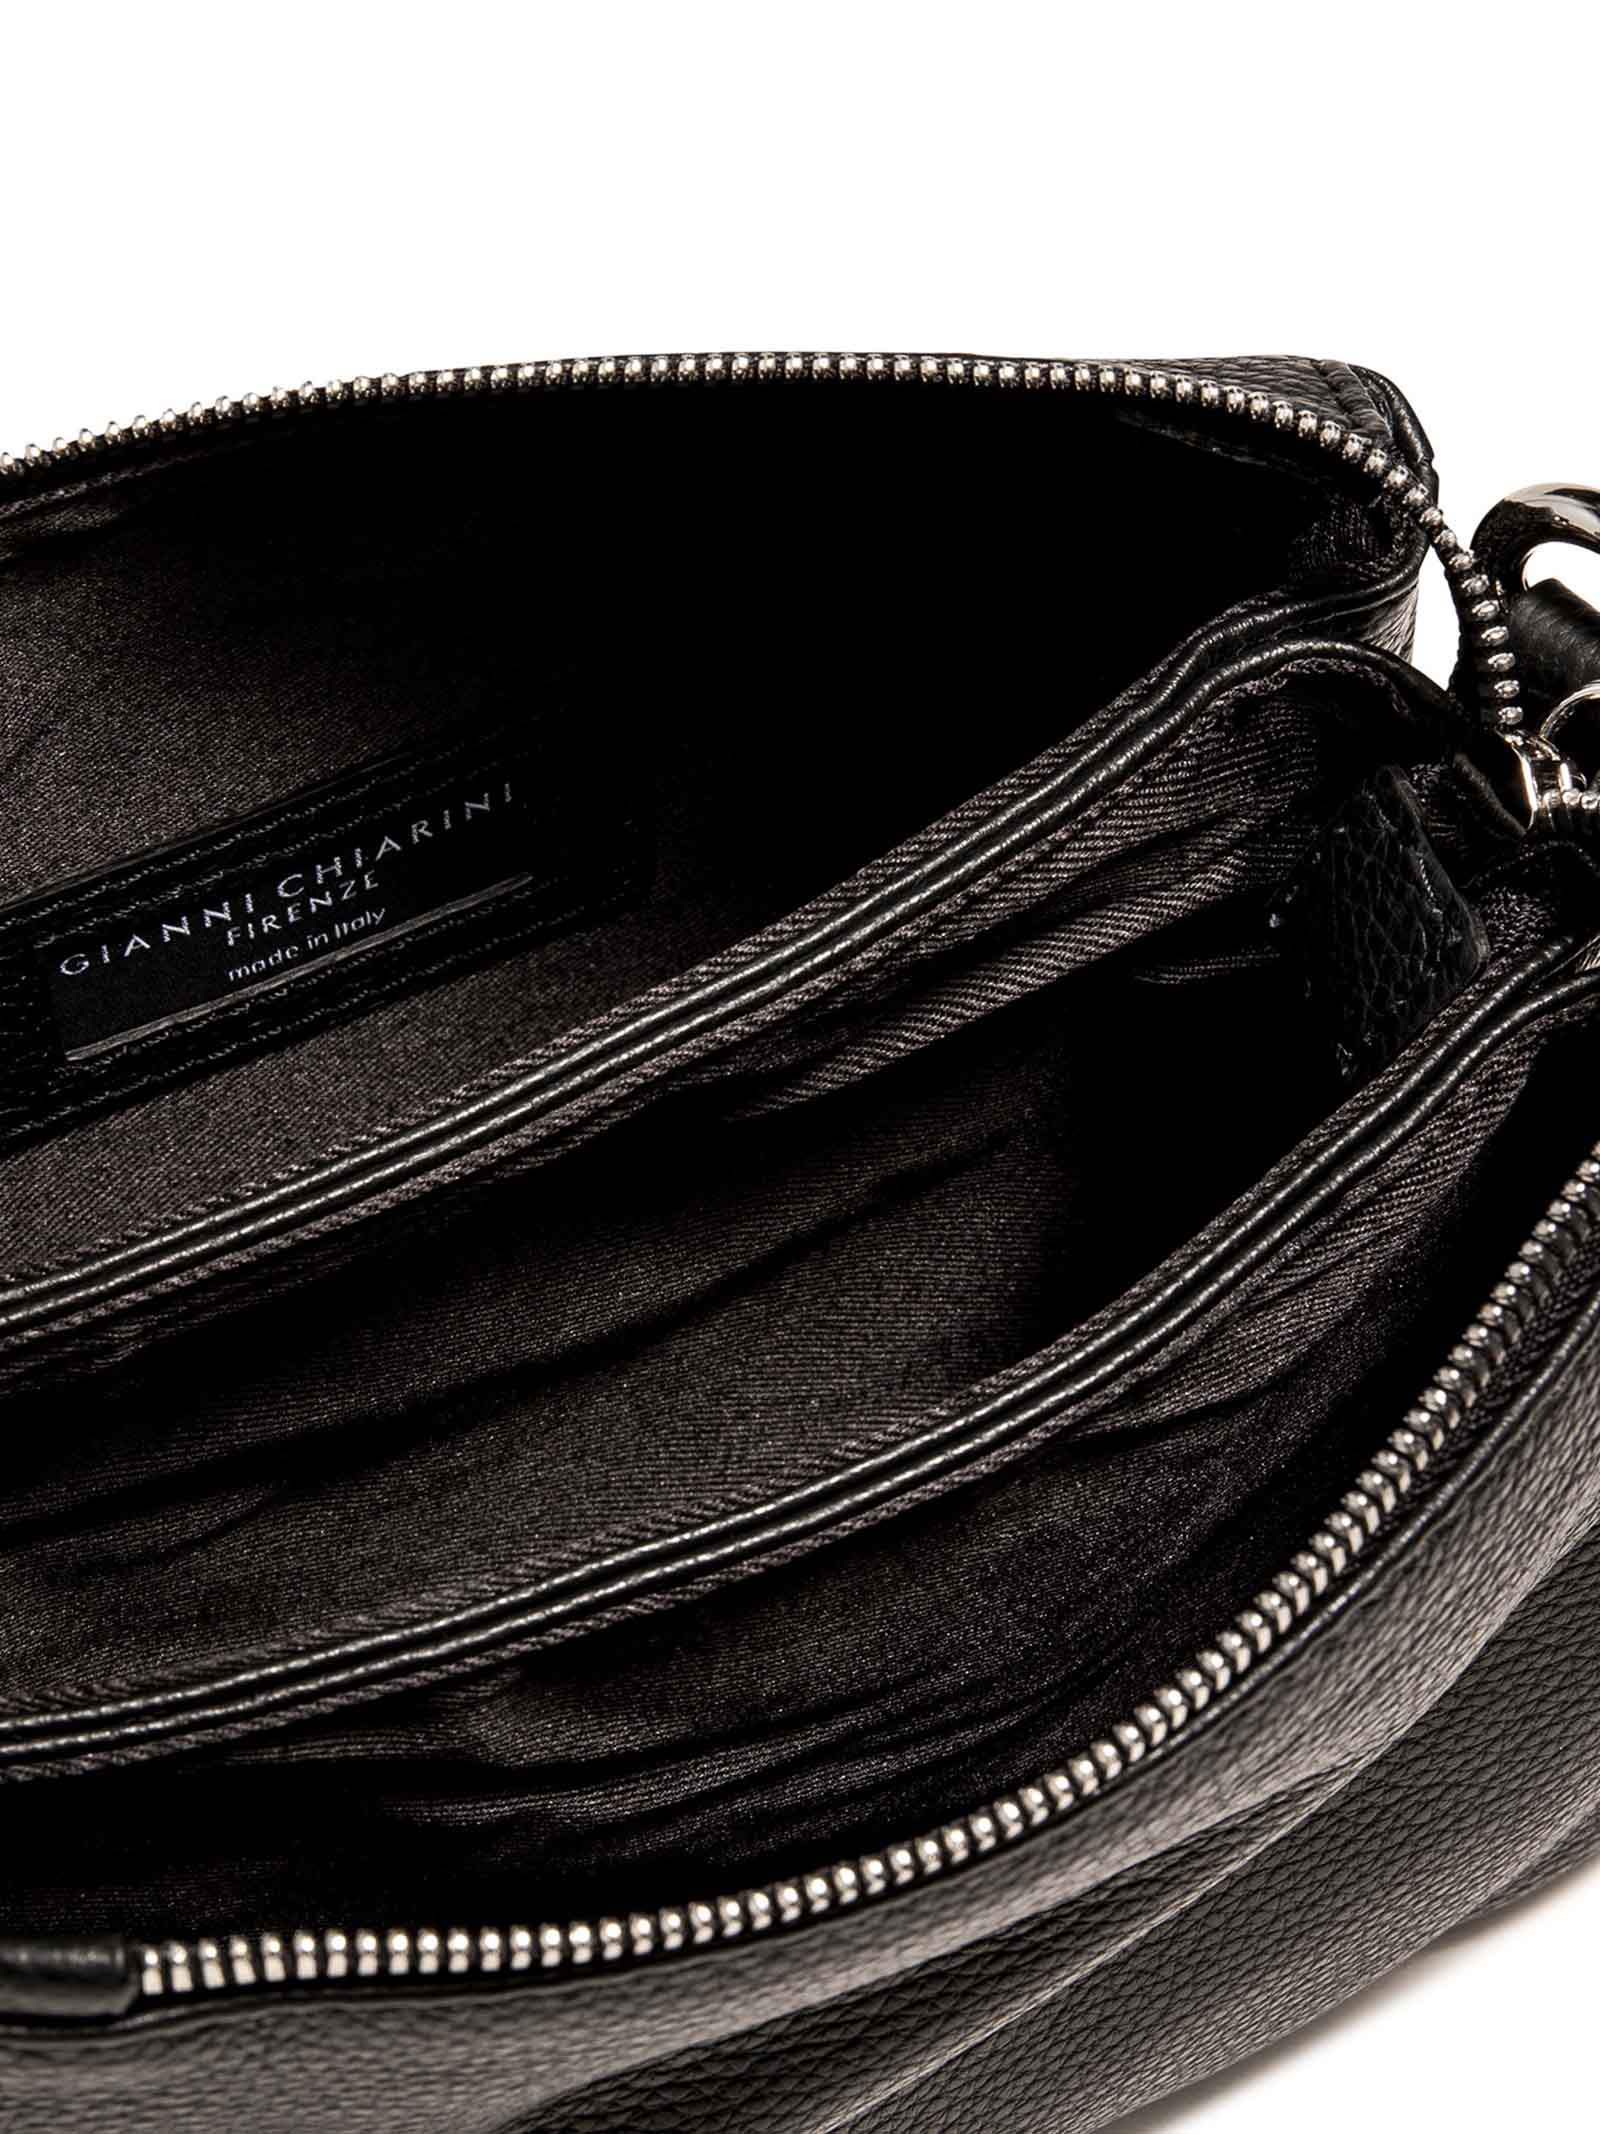 Women's Bag Cross-body Clutch Three In Black Hammered Leather With Adjustable And Detachable Cross-body Strap Gianni Chiarini | Bags and backpacks | BS4362001